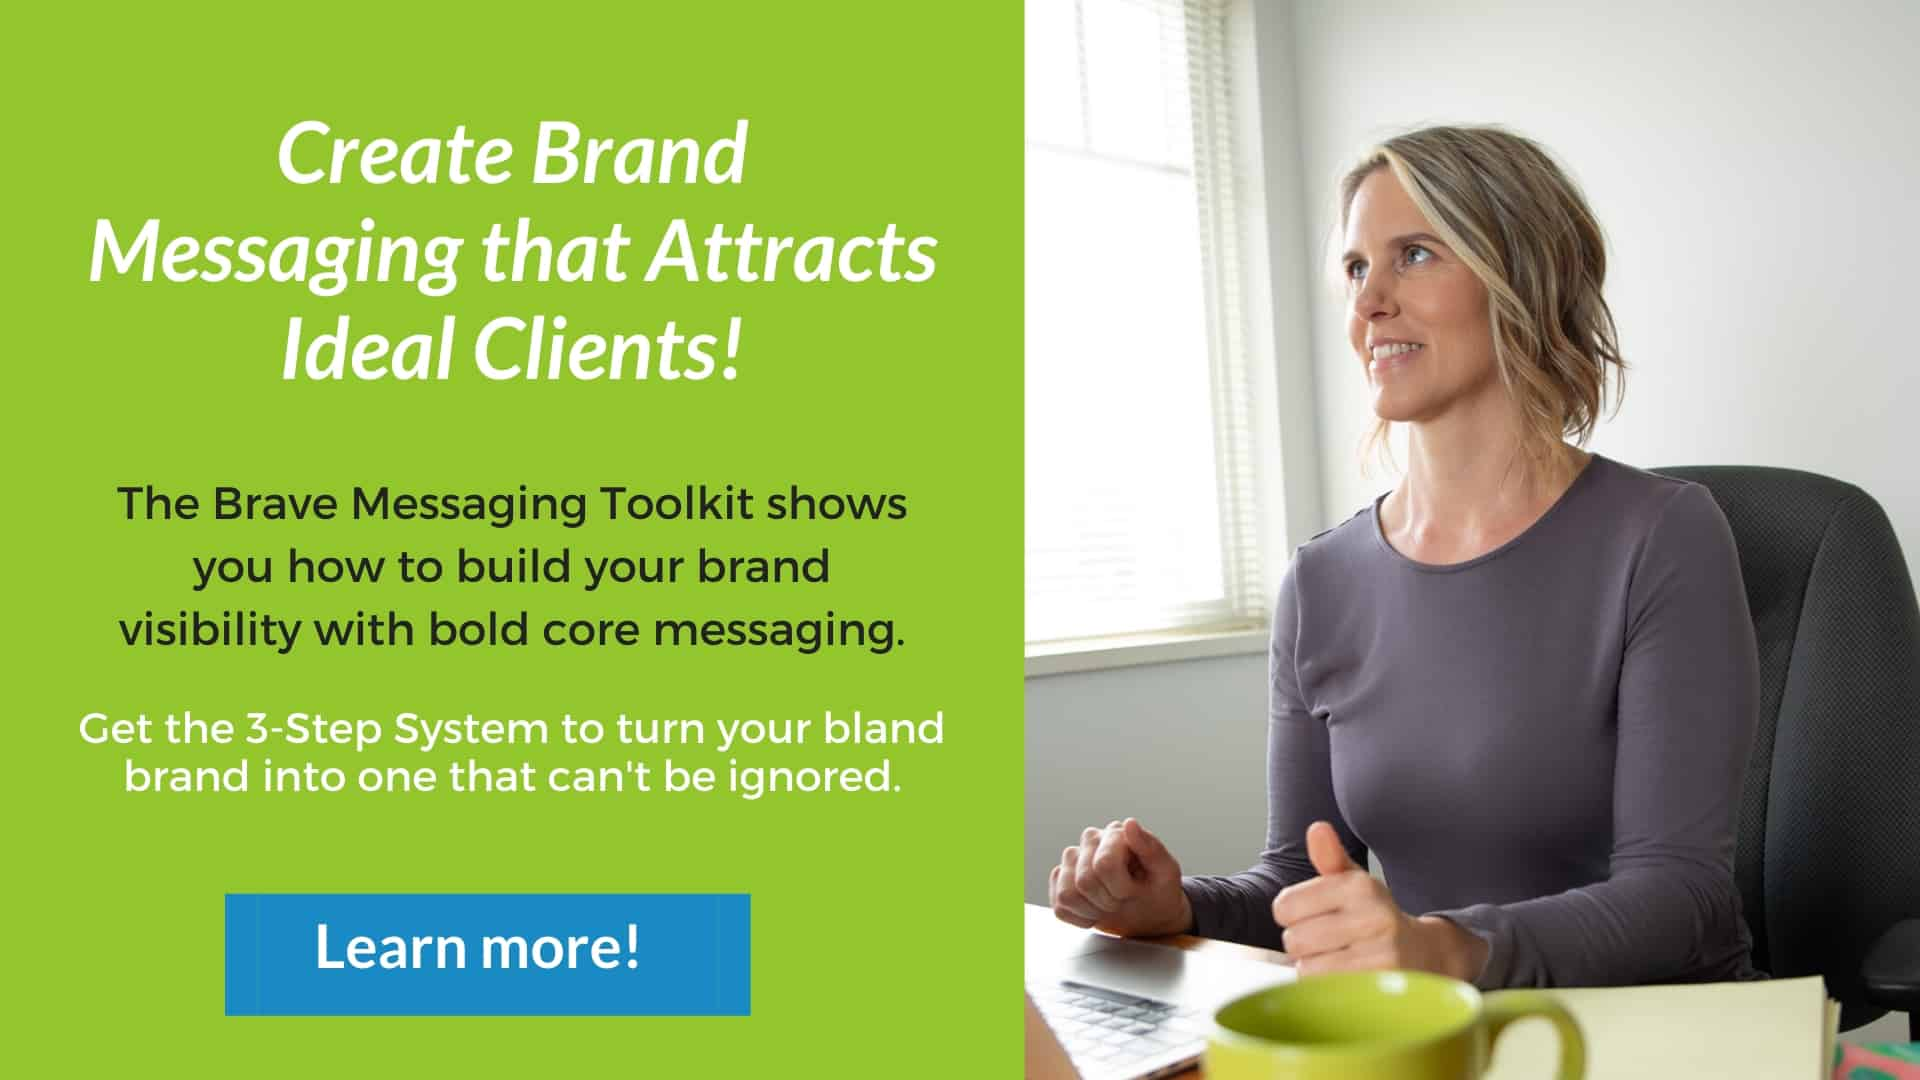 Brave messaging toolkit